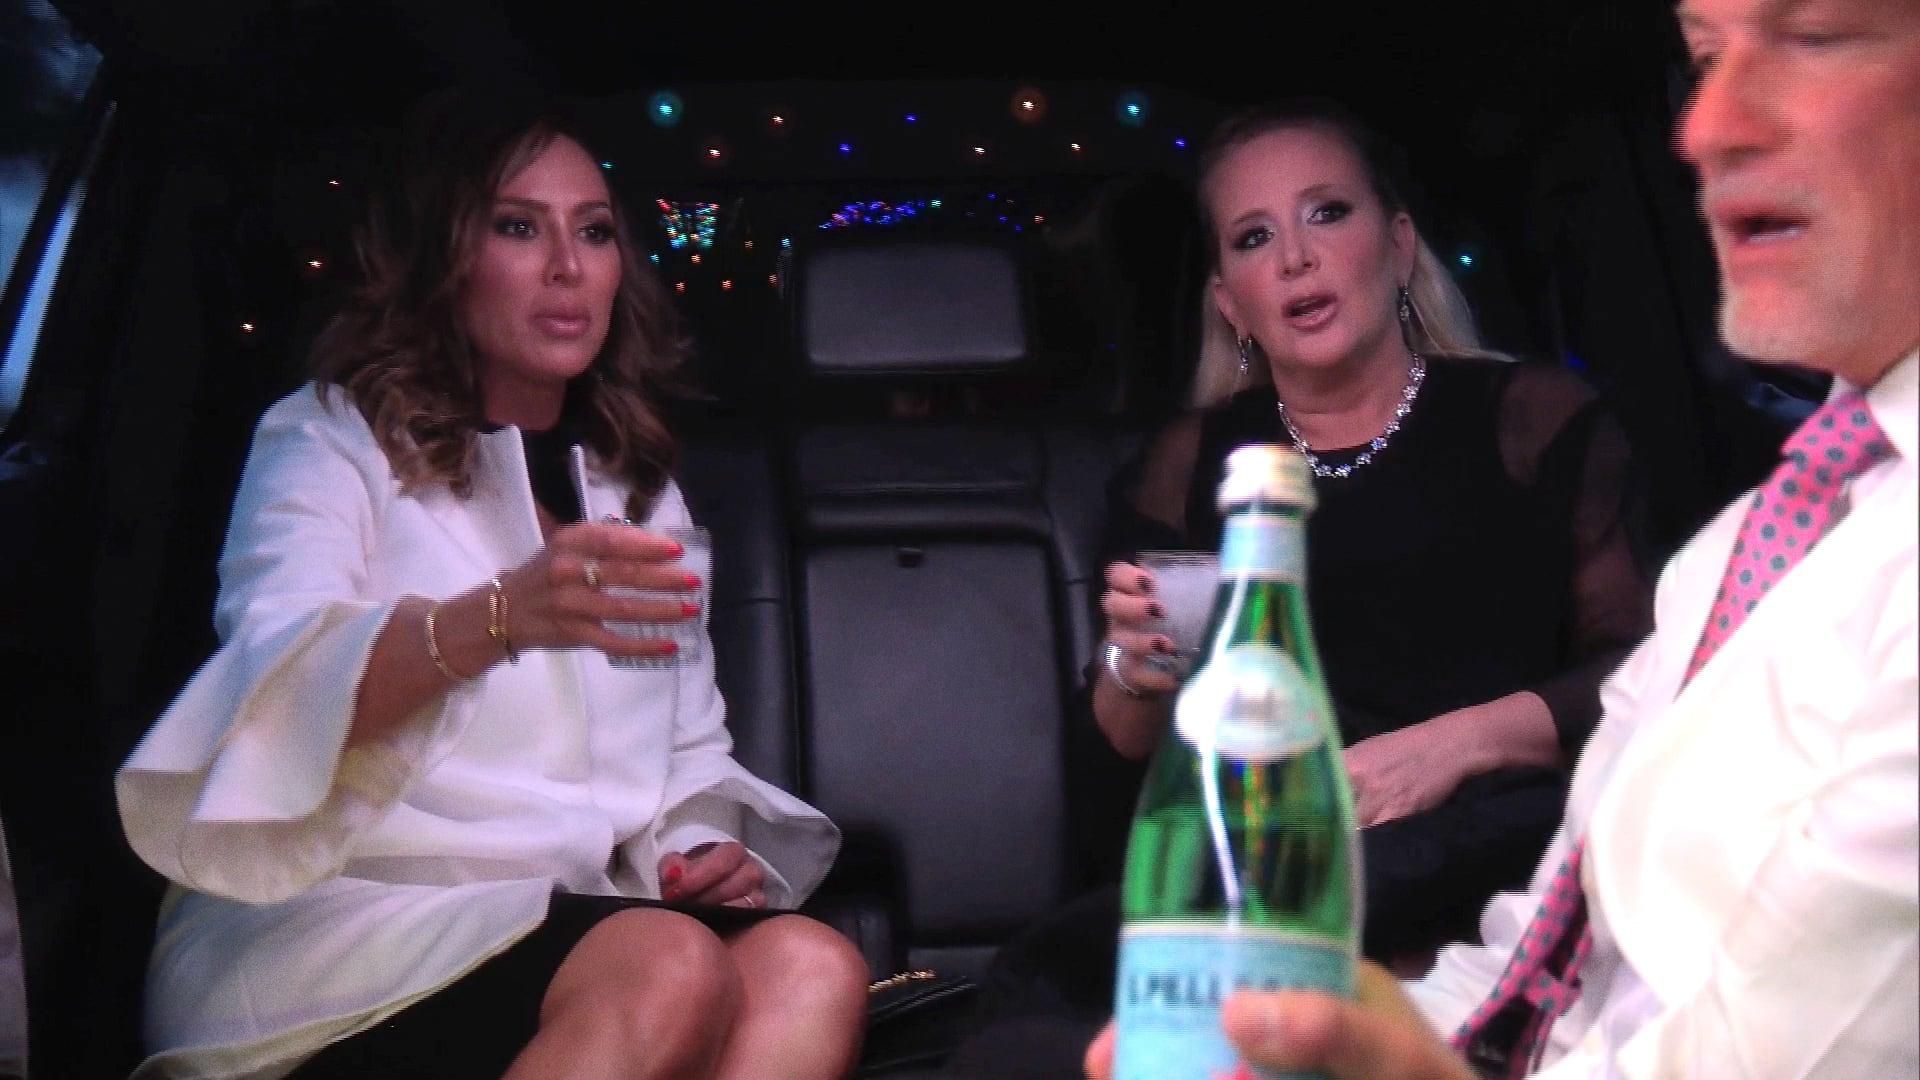 The Real Housewives of Orange County - Season 12 Episode 19 : Candle Wicks and Lunatics